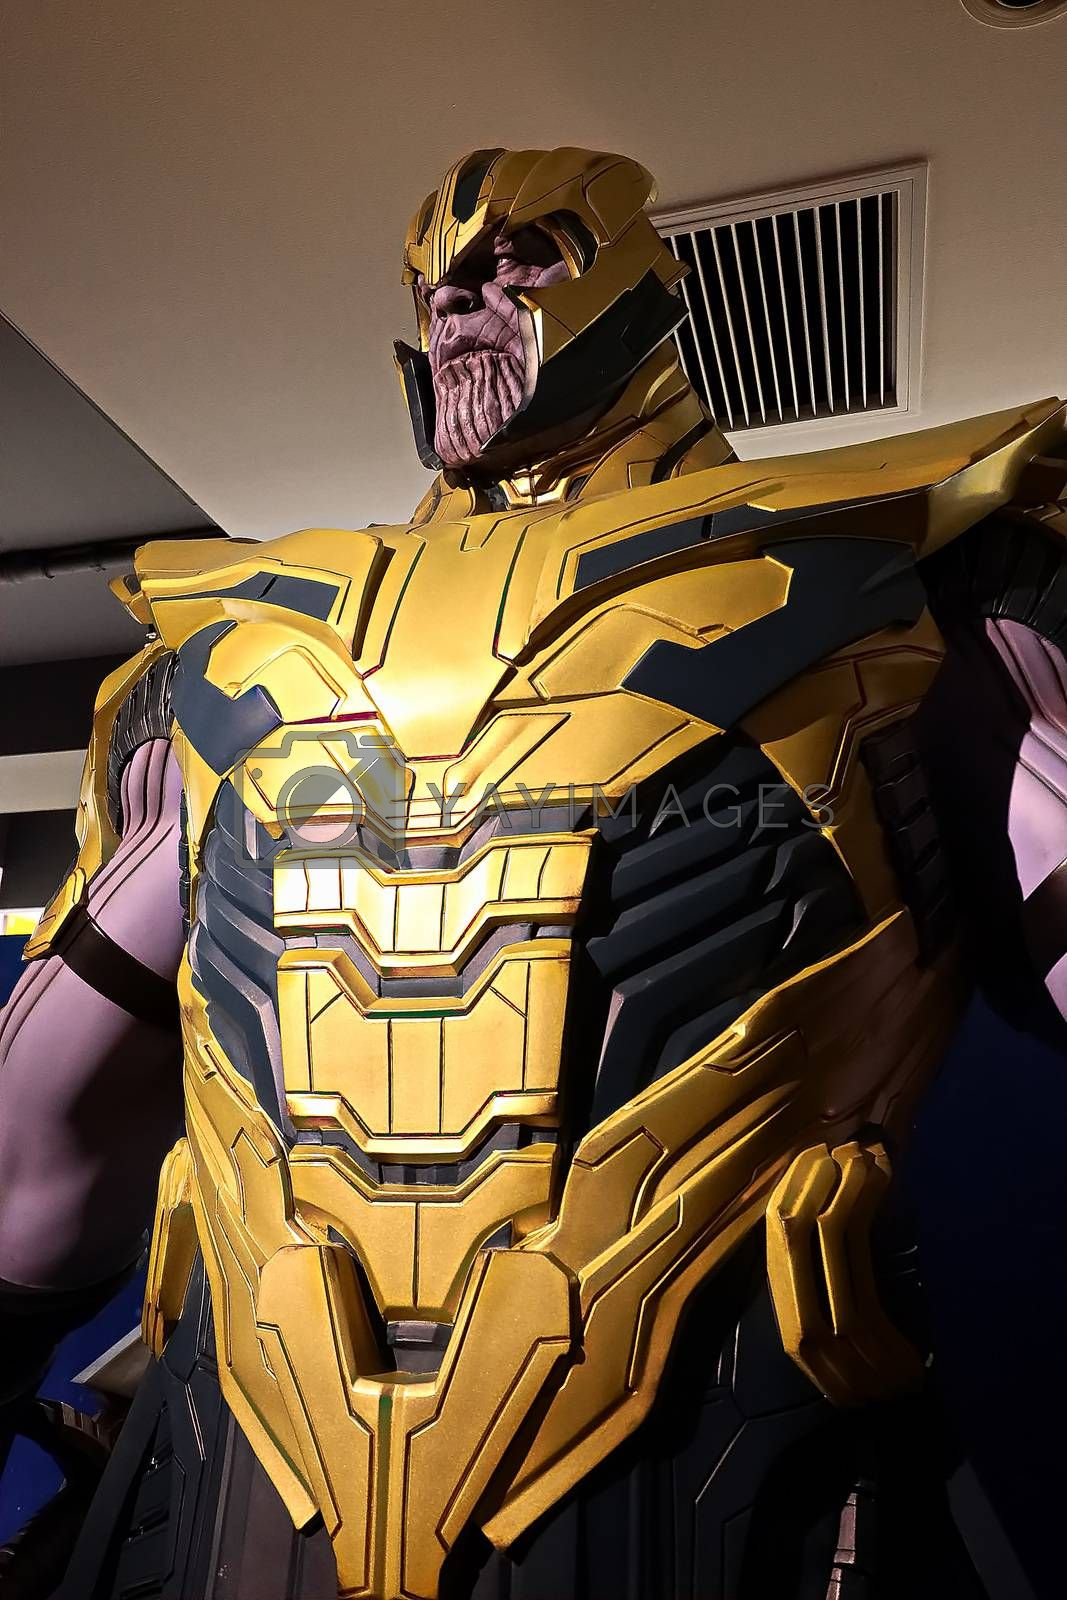 Royalty free image of Thanos full armor suit action figure show for promote Avengers endgame movie by USA-TARO